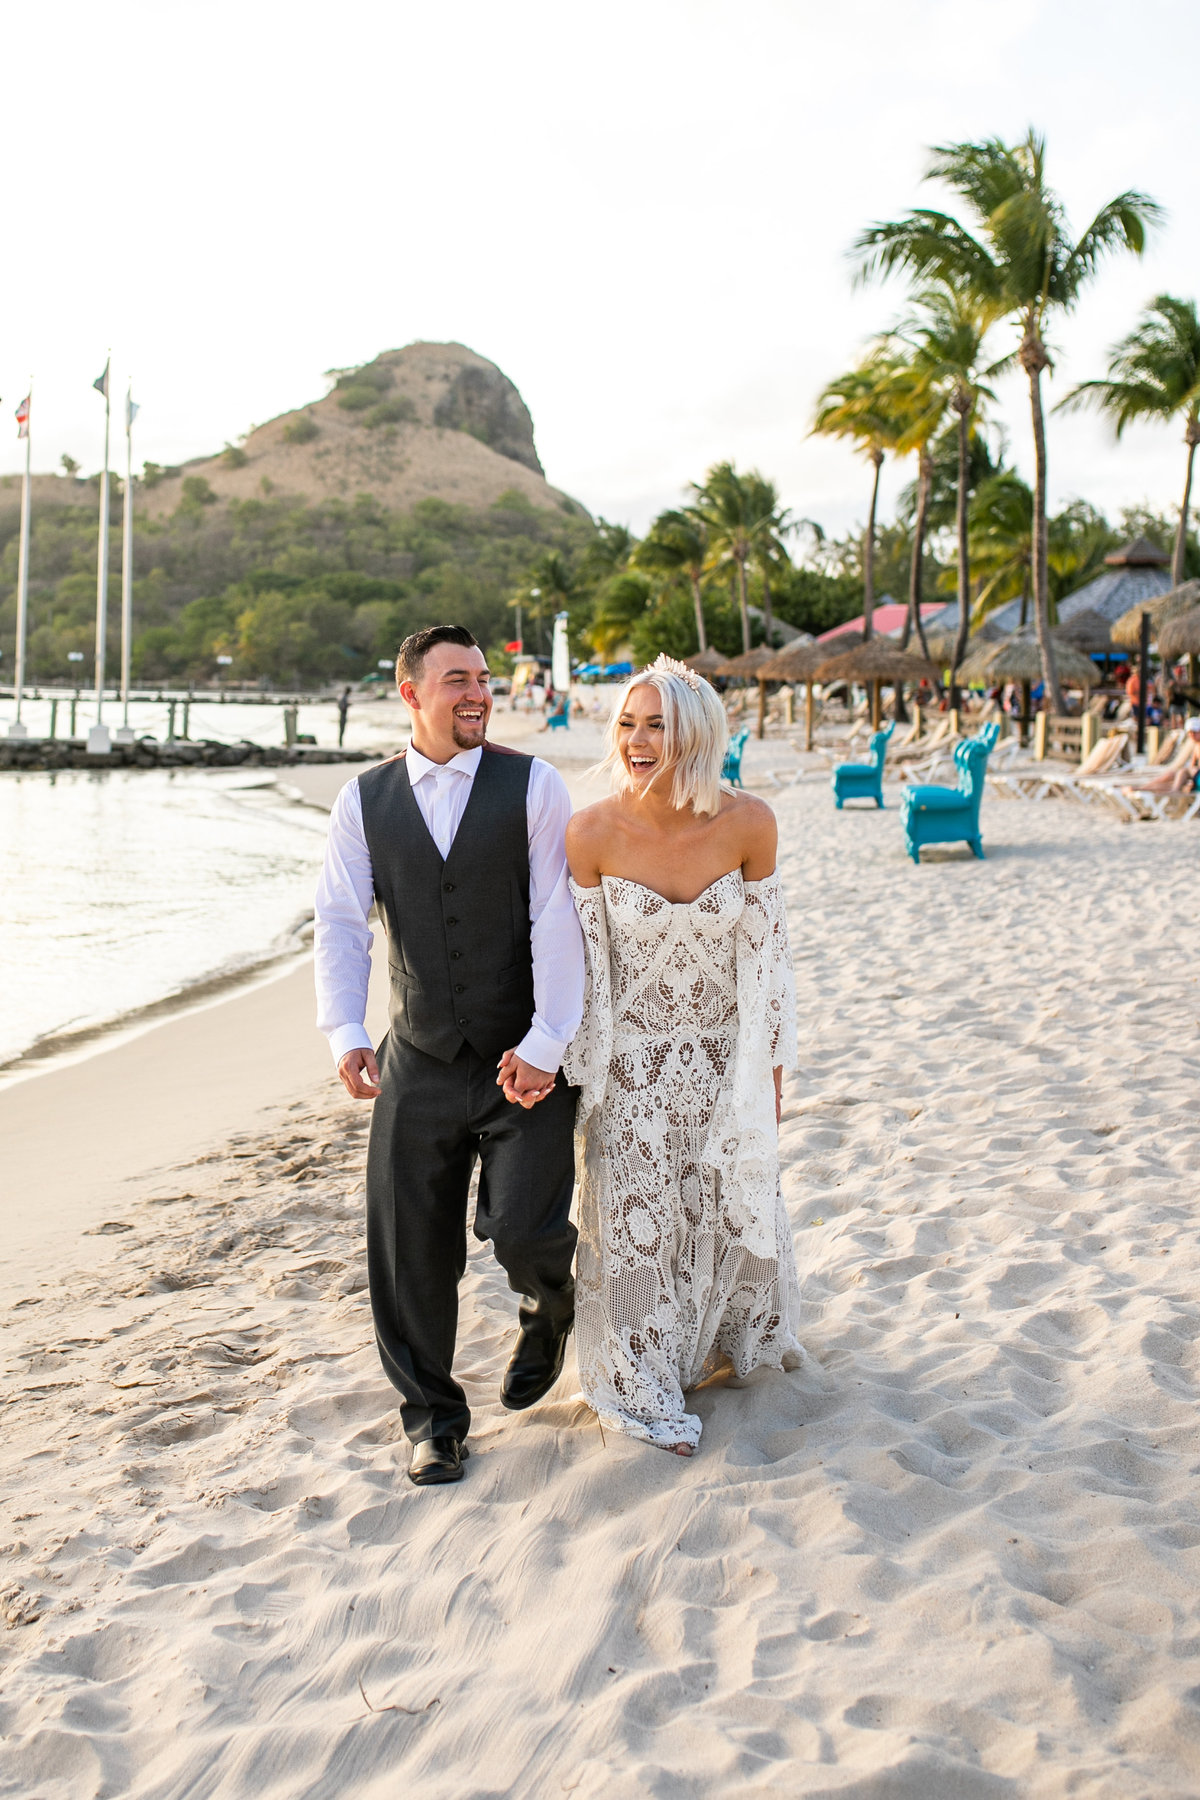 Bride and groom on the beach during their destination wedding